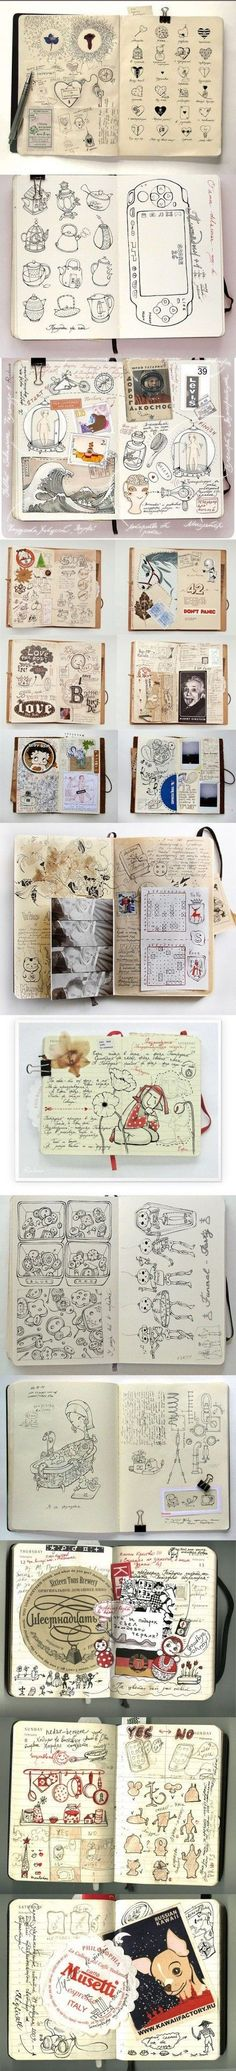 sketchbook / art journal / moleskine / creativity / drawing / scrapbook- I need… Arte Sketchbook, Moleskine Sketchbook, Fashion Sketchbook, Buch Design, Doodles, Visual Diary, Sketchbook Inspiration, Sketchbook Ideas, Doodle Inspiration